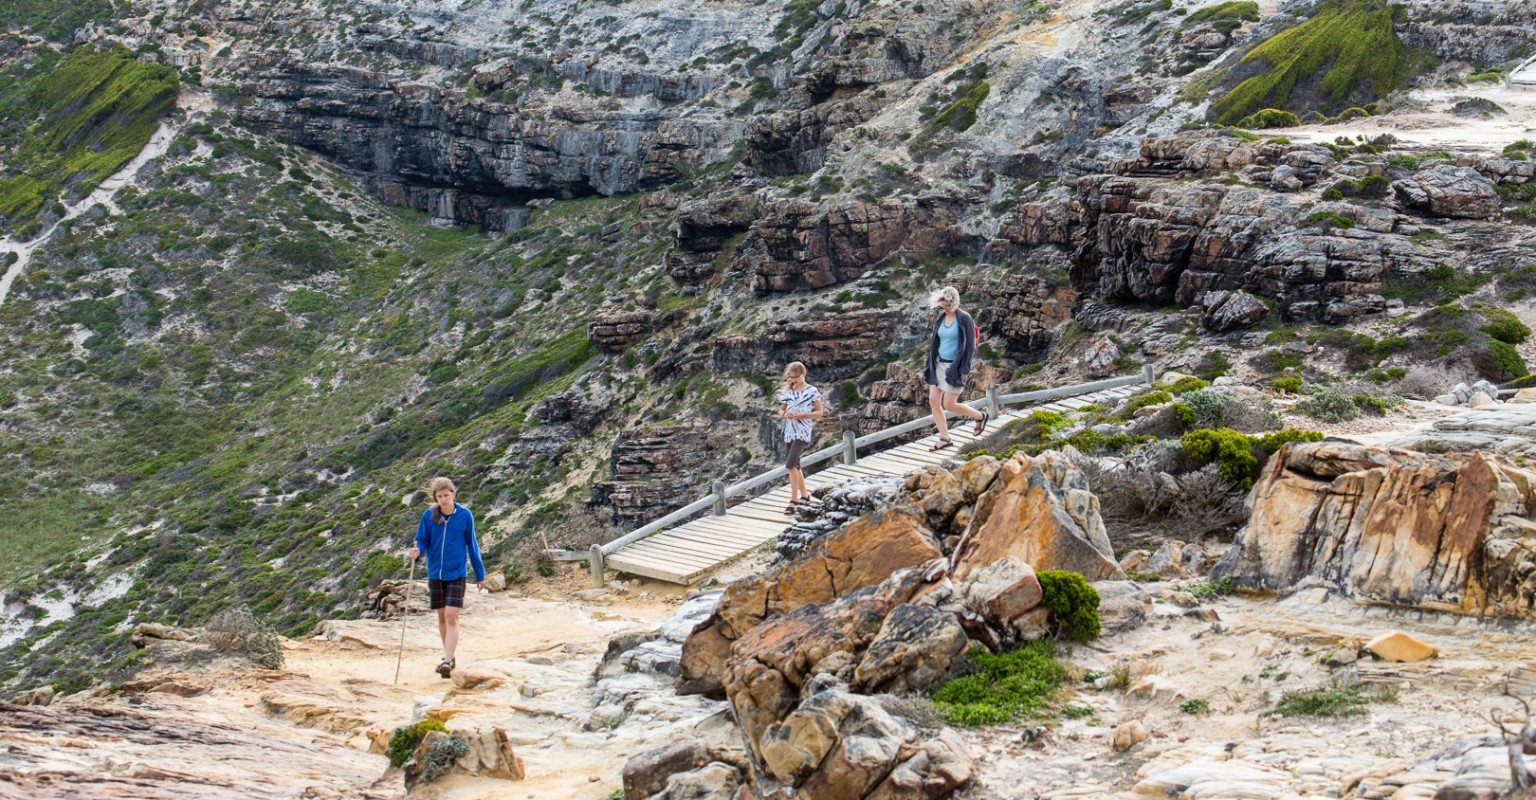 29.10. Cape Tour - Cape of Good Hope